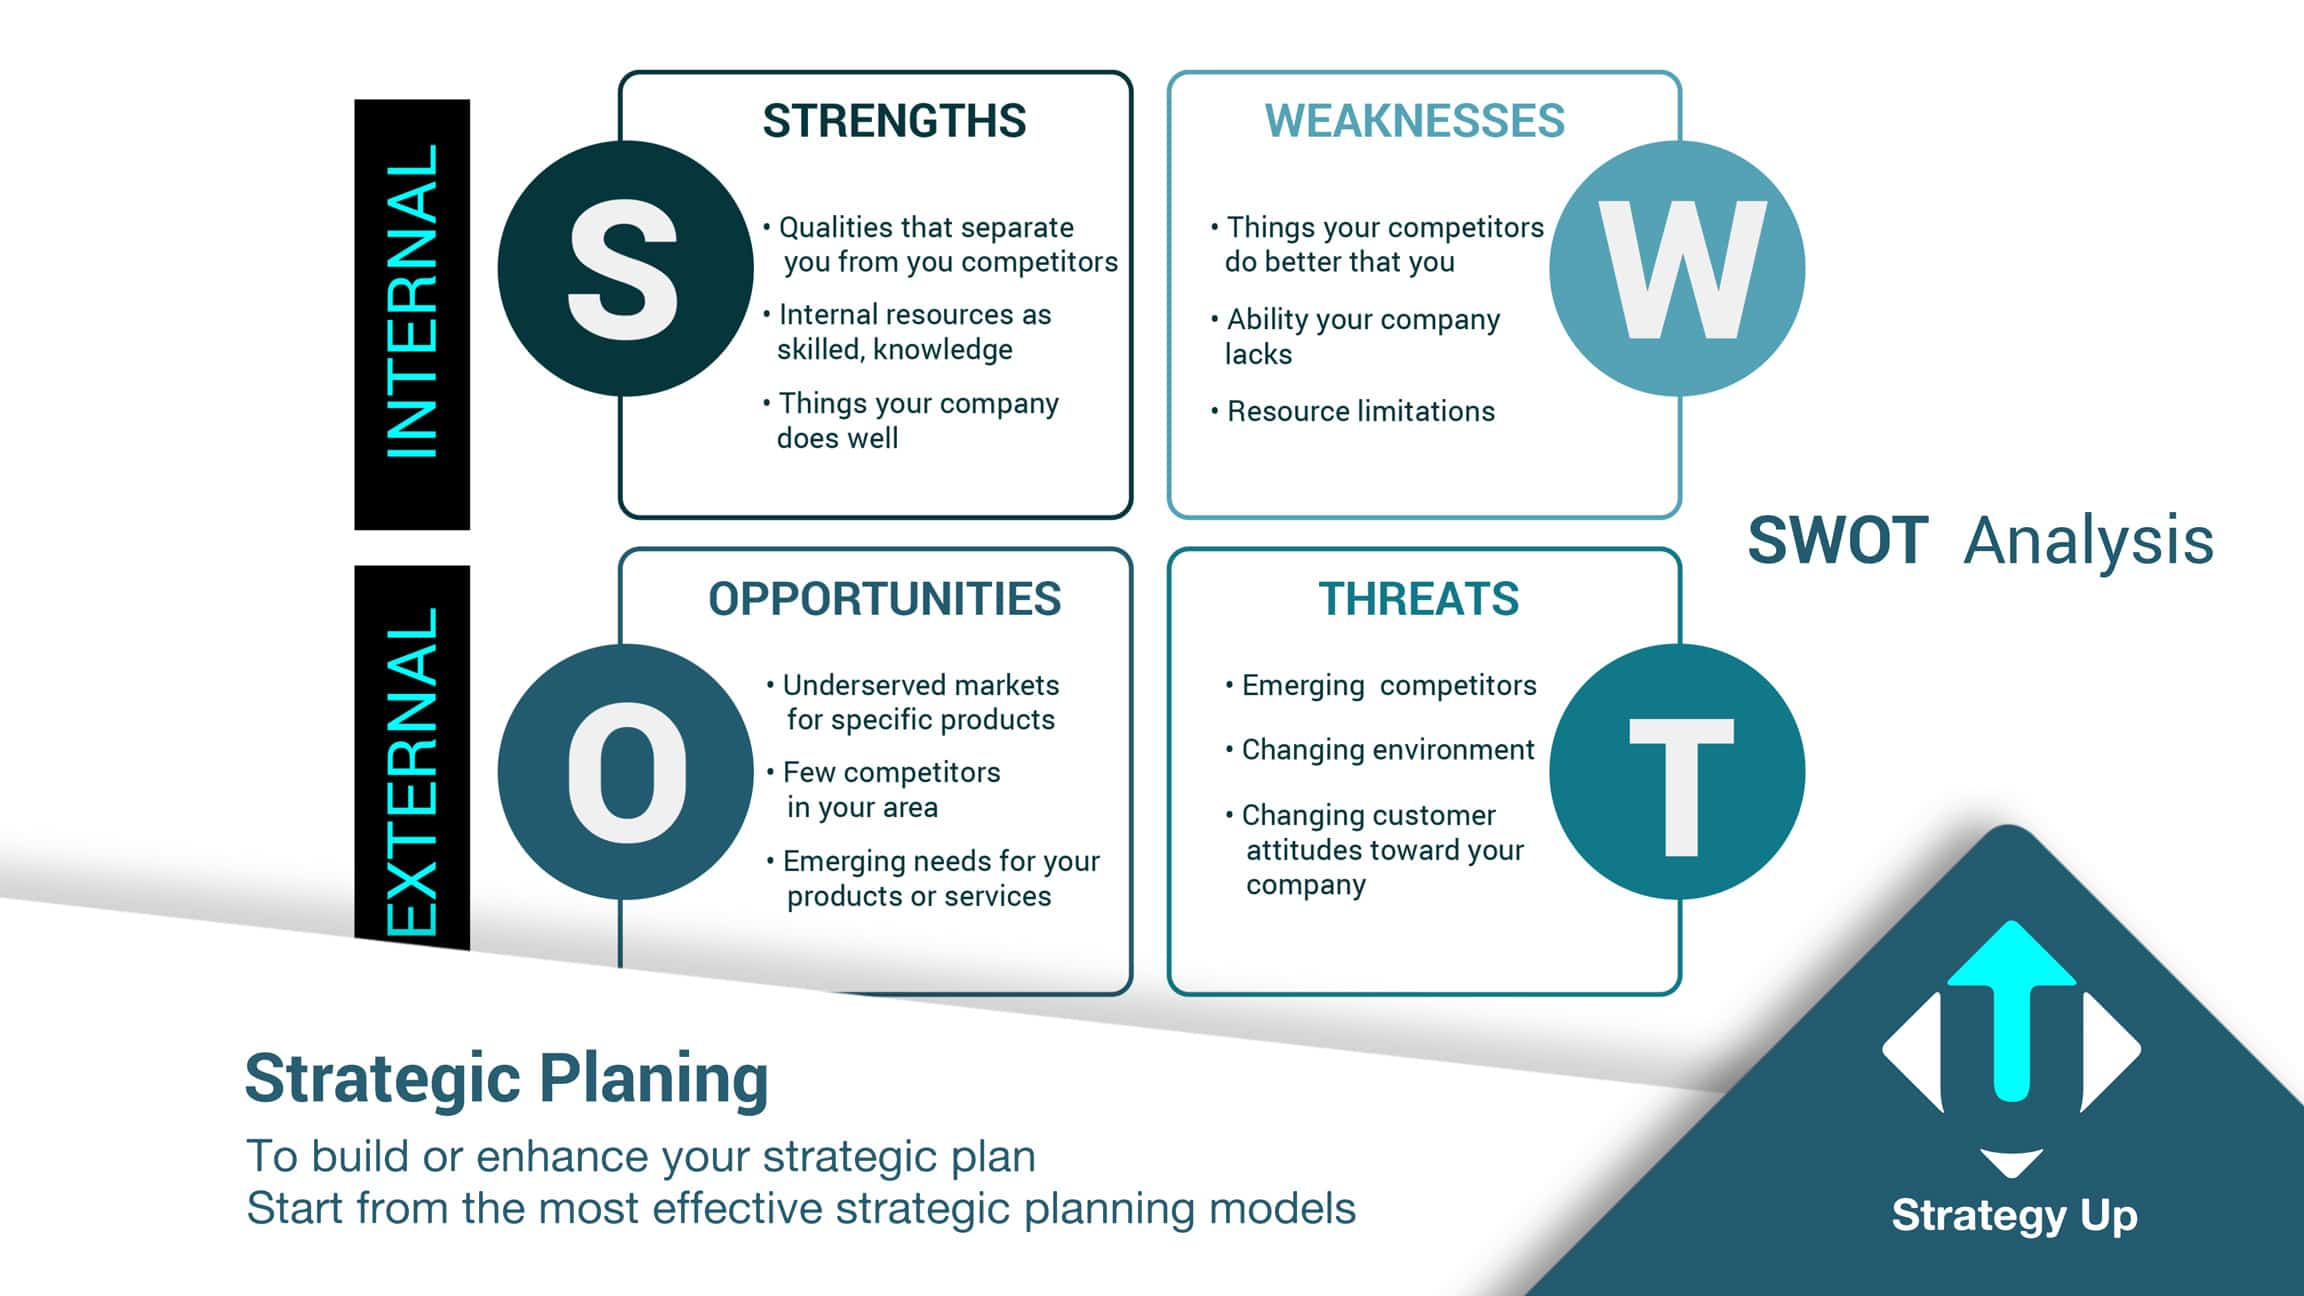 Strategic Planning - SWOT Analysis